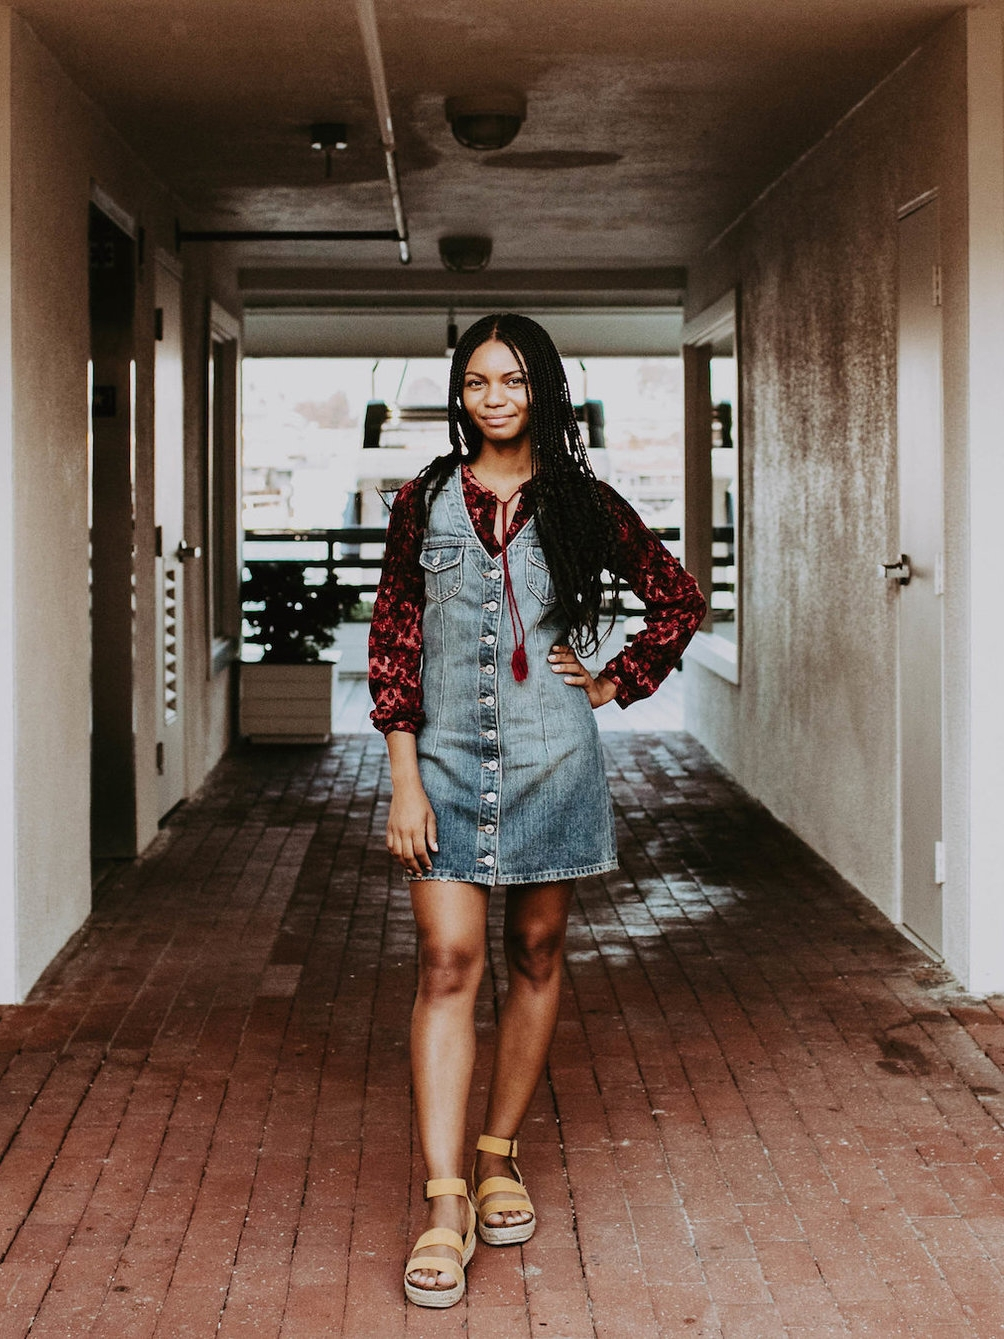 Farmer-chic outfit // A Week Of 1970s-Inspired Outfits With Leah Thomas, The Sustainable Lifestyle Blogger Behind Green Girl Leah on The Good Trade